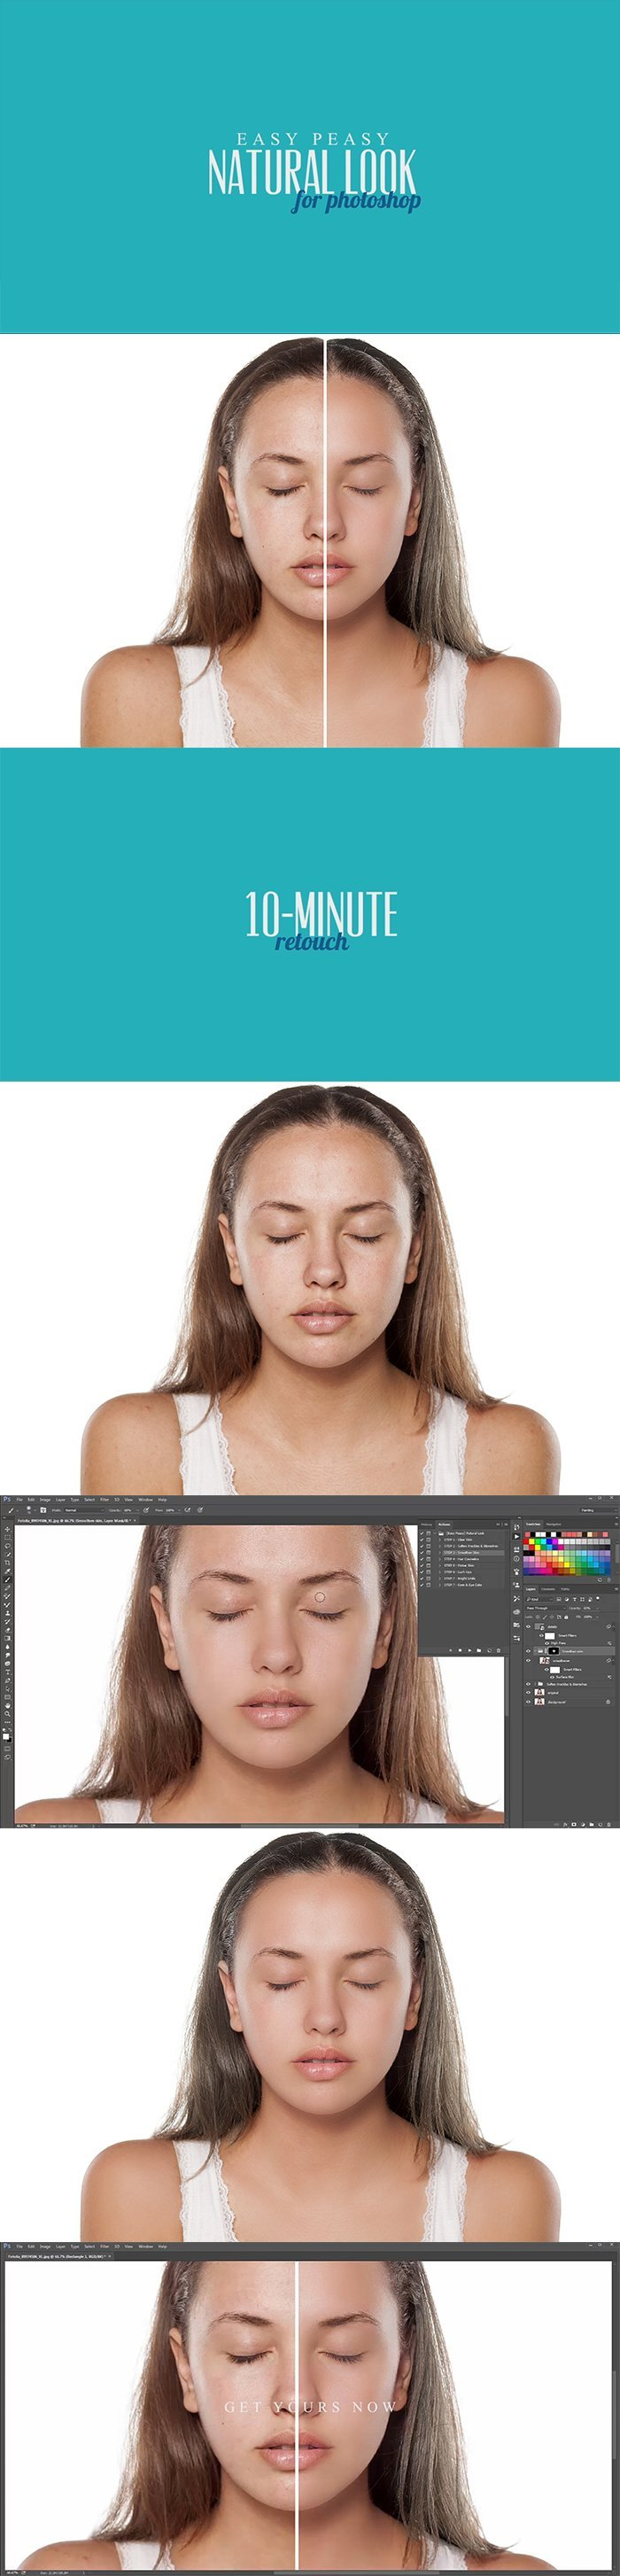 Retouch Images